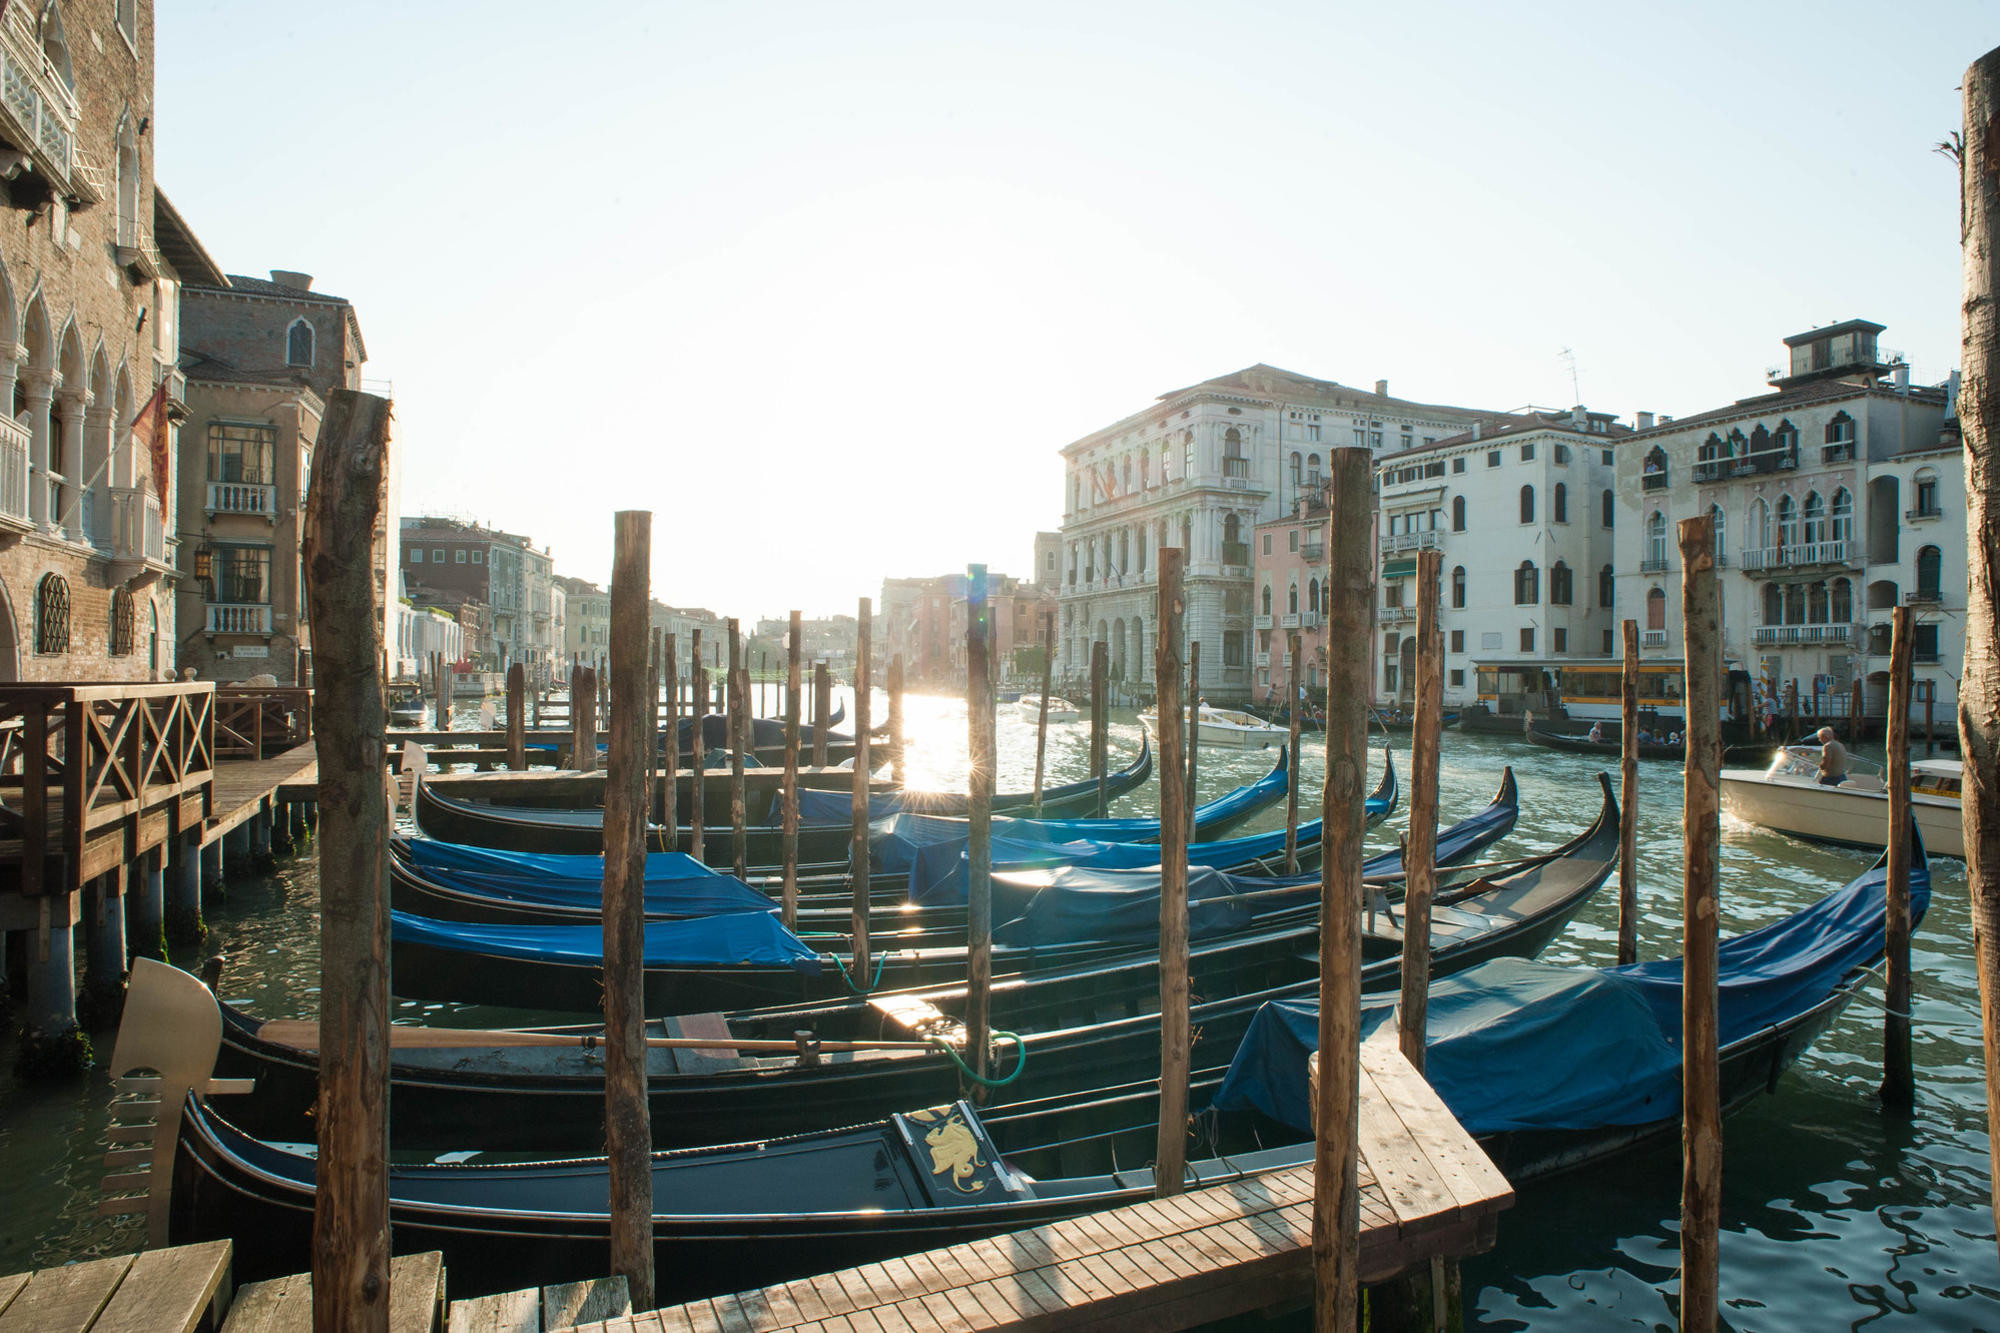 Gondolas docked on the Grand Canal in Venice in the late afternoon.